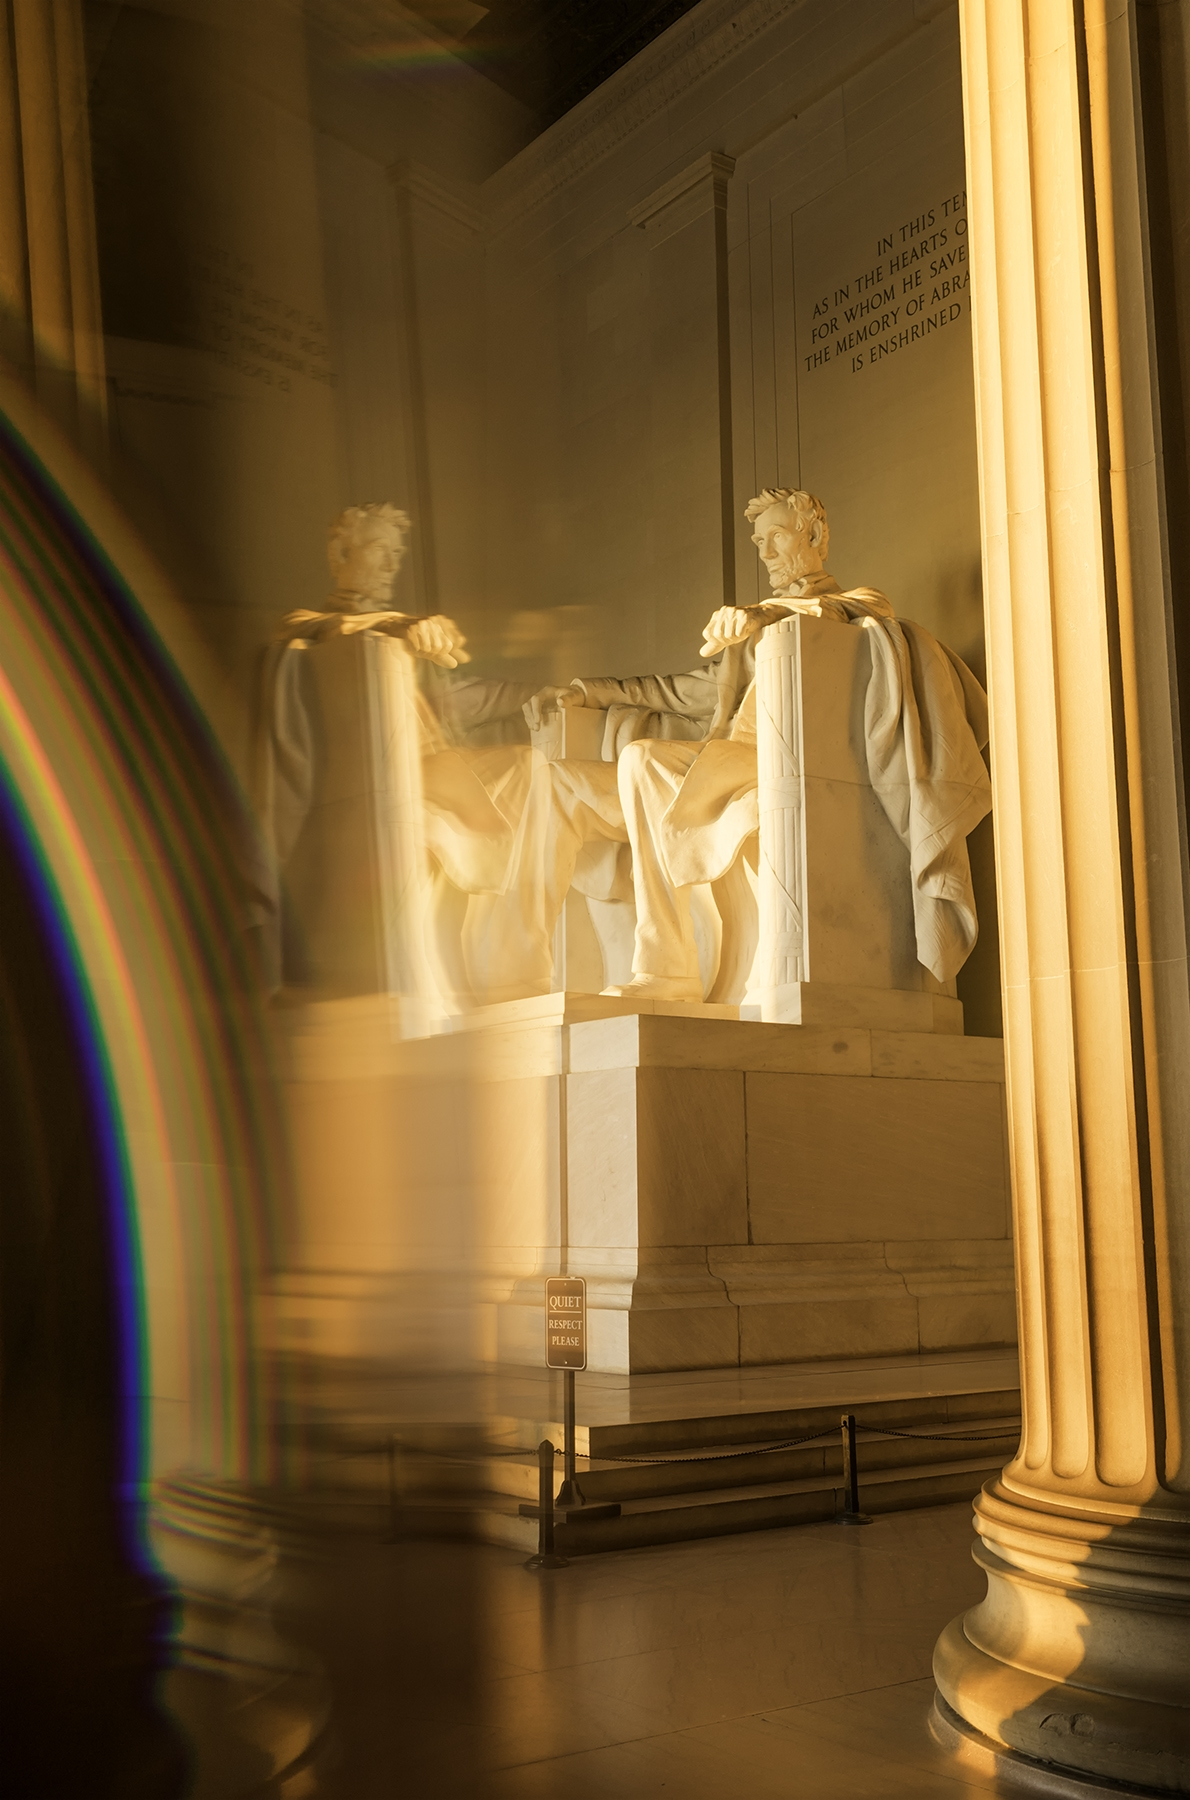 Lincoln Memorial, washington dc, national mall, early morning, sunrise, orange glow, memorial, prism, reflection, photo props,